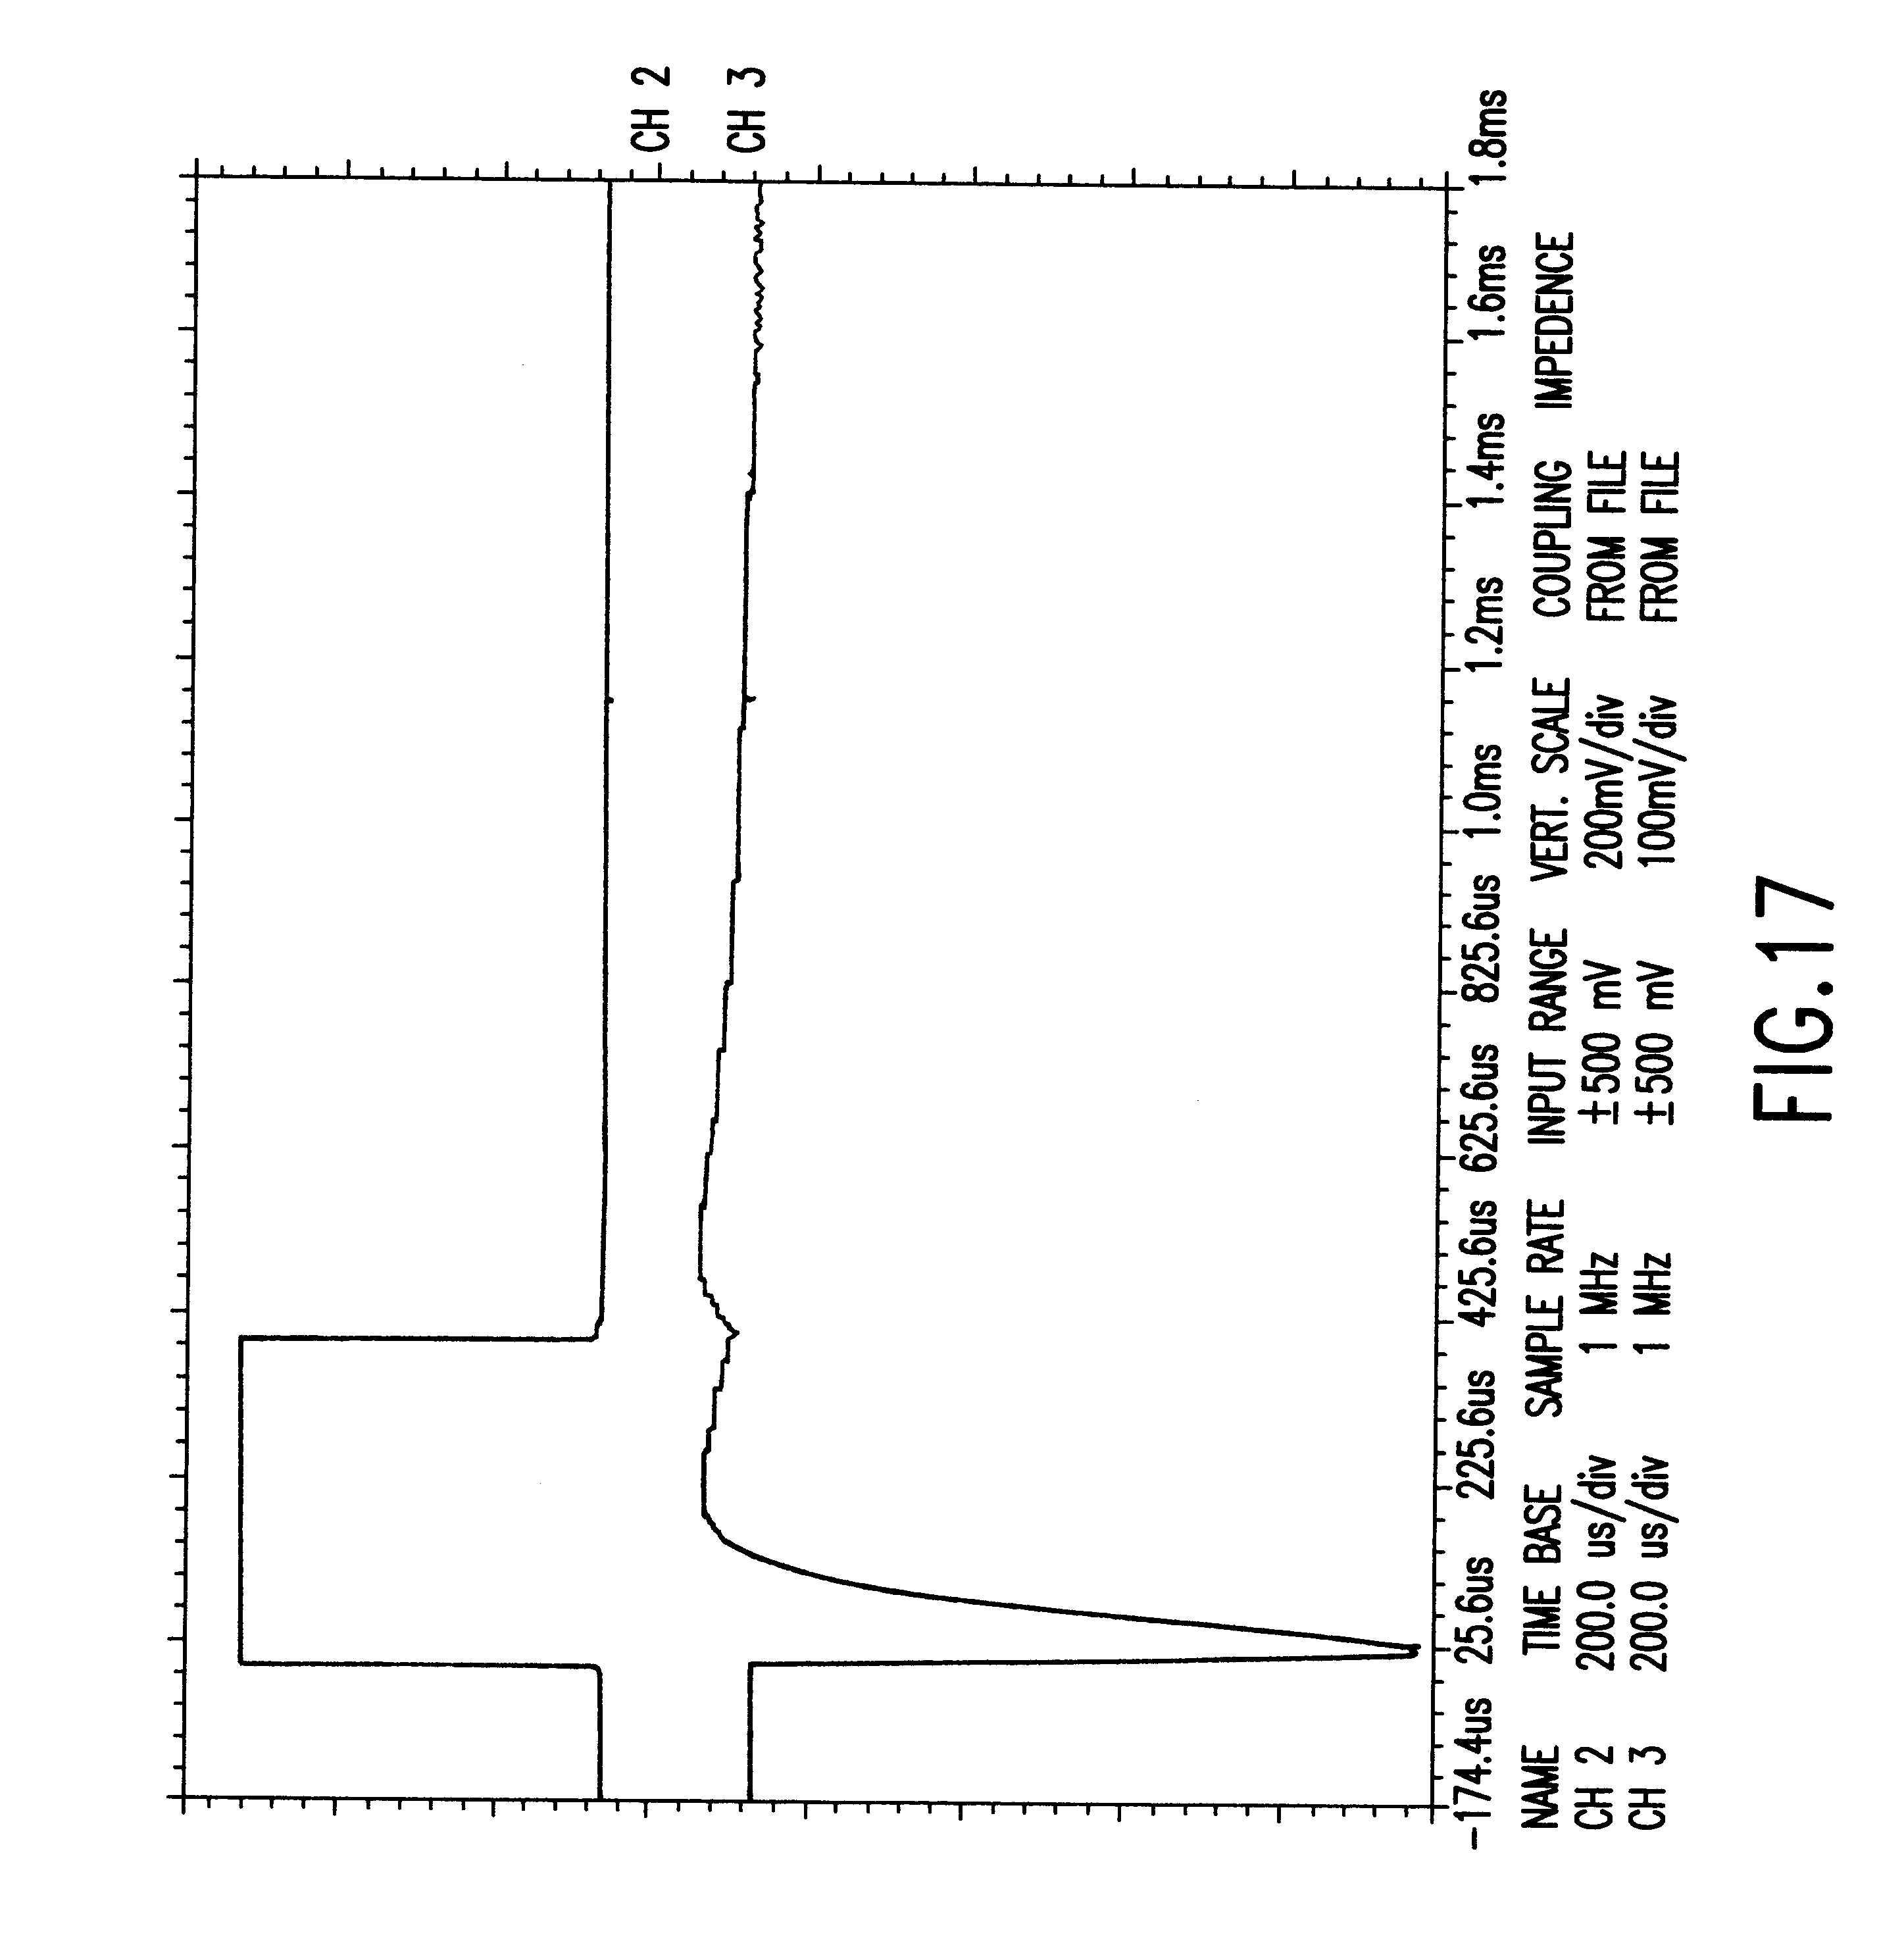 patent us6407382 - discharge ionization source